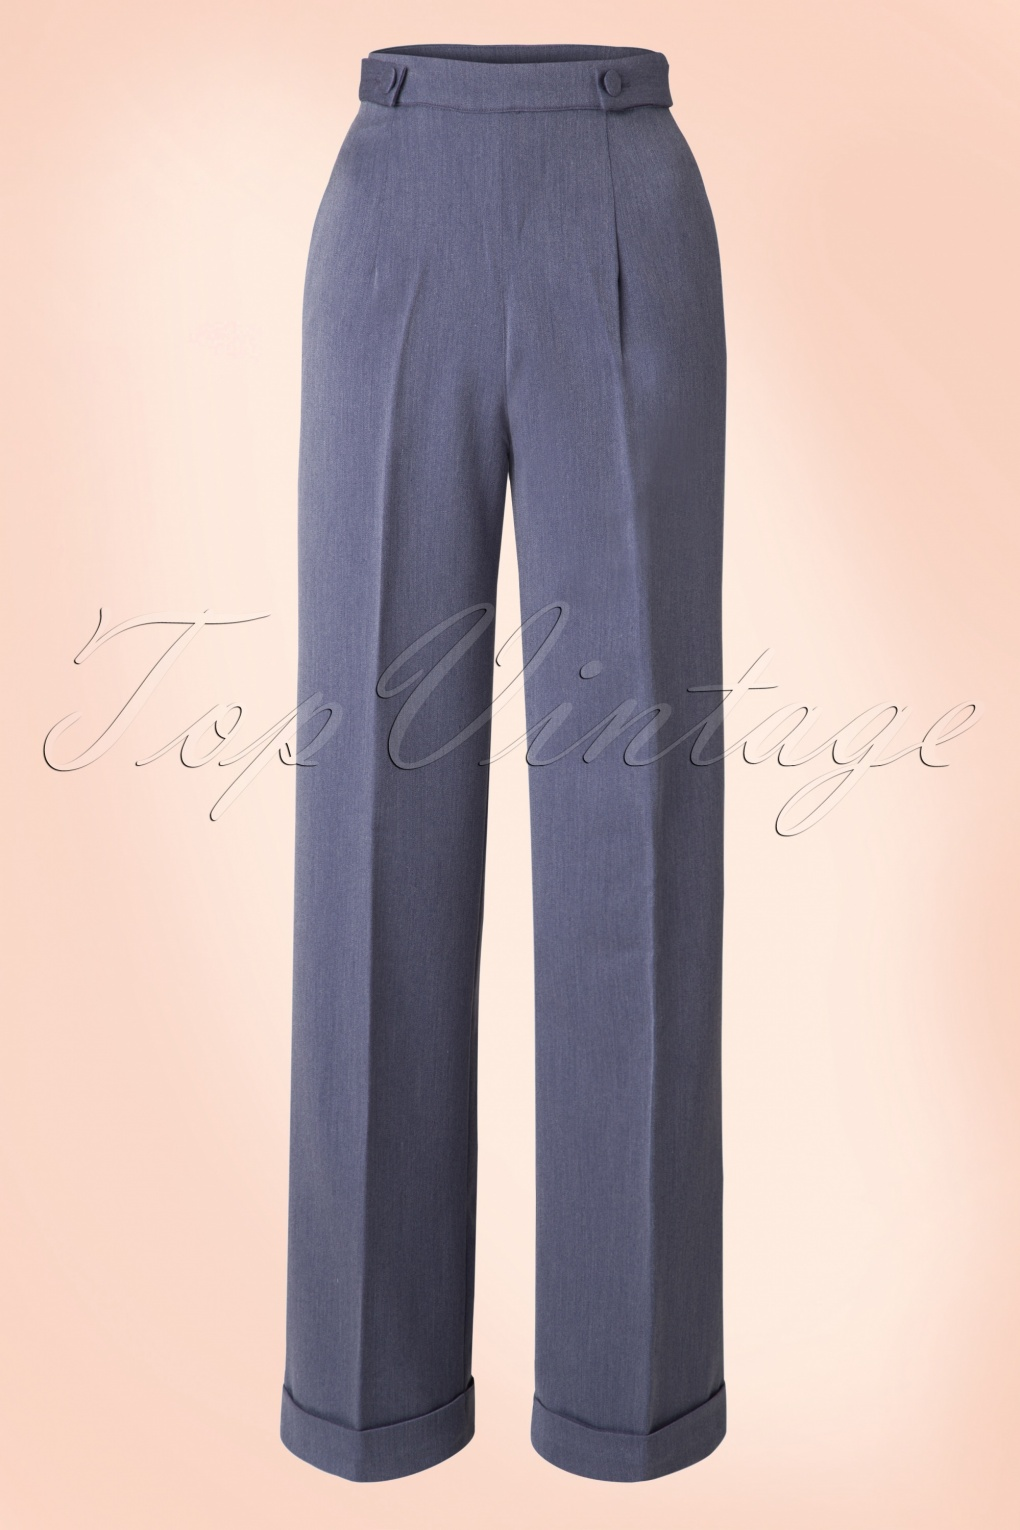 1940s Style Pants & Overalls- Wide Leg, High Waist 40s Party On Classy Trousers in Denim £16.93 AT vintagedancer.com